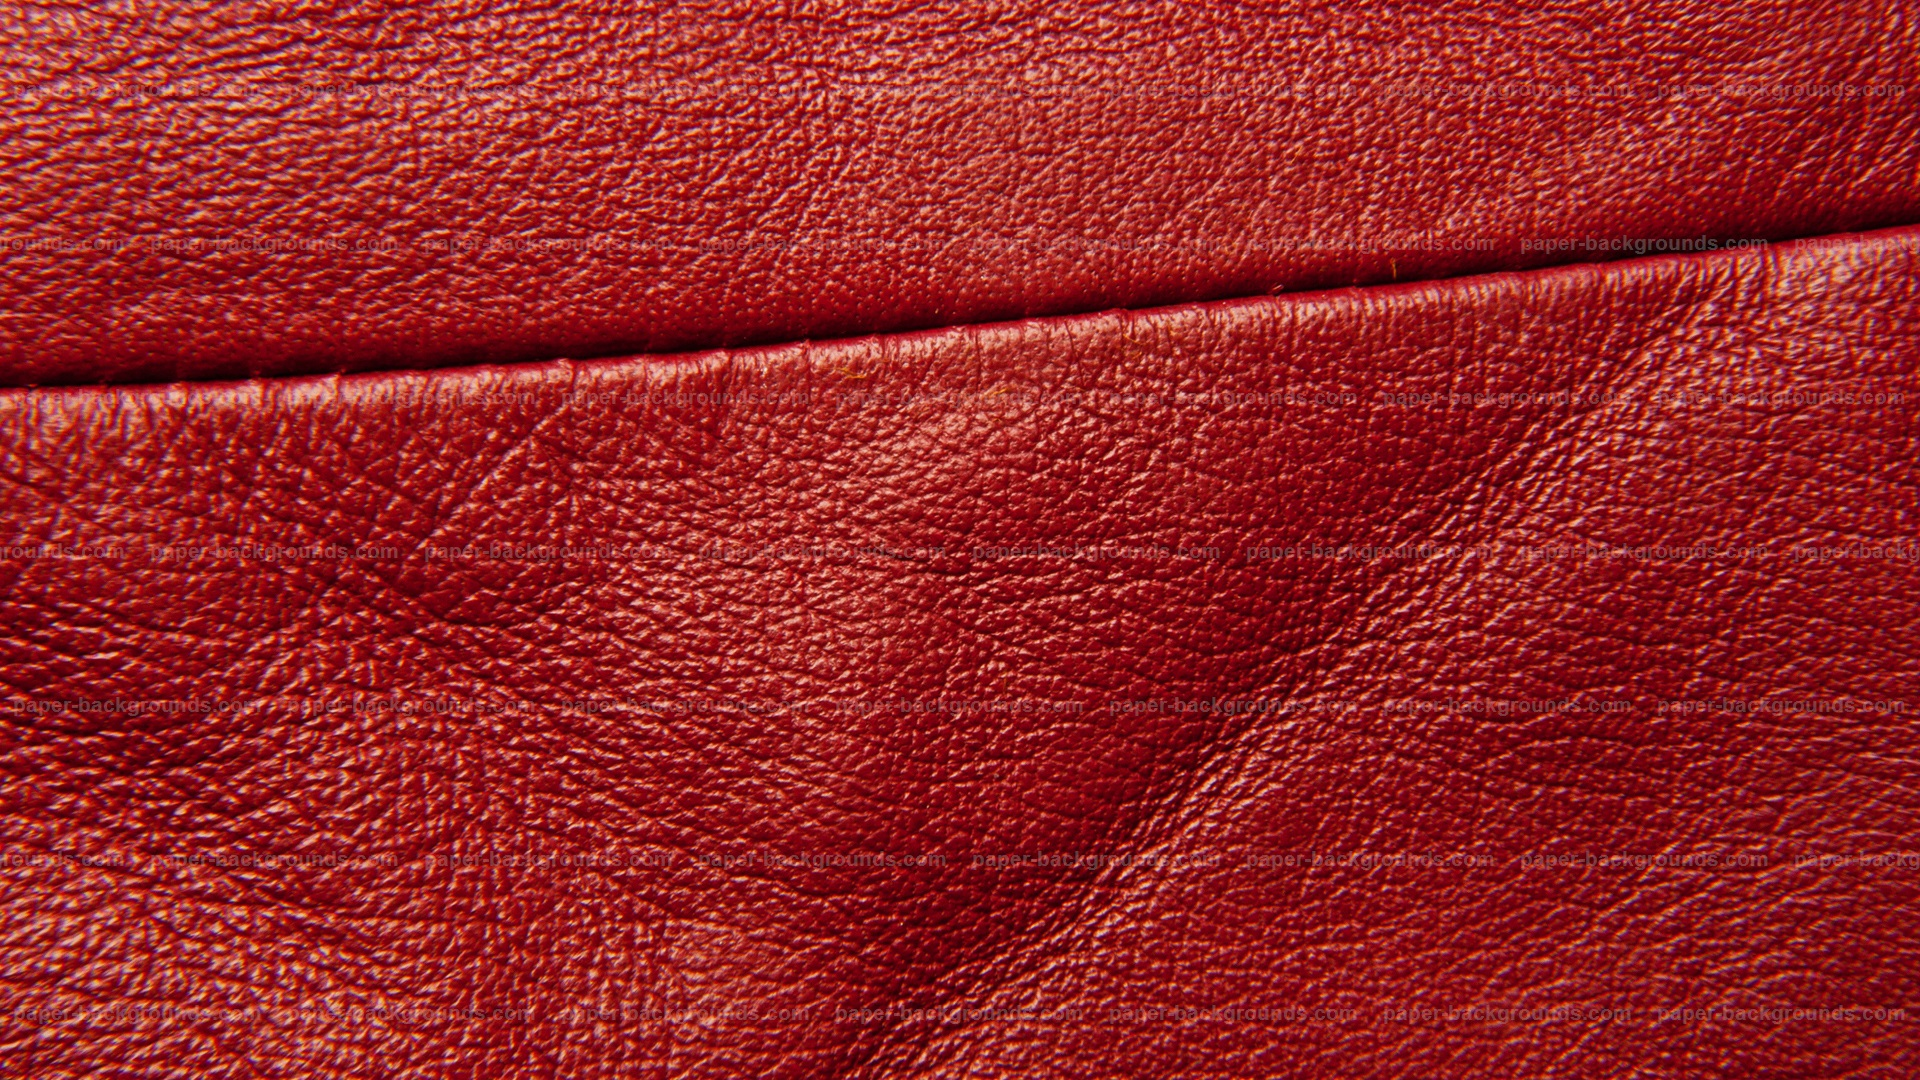 Mike Altieri Wallpapers Red Leather Texture Background Red Leather Texture With